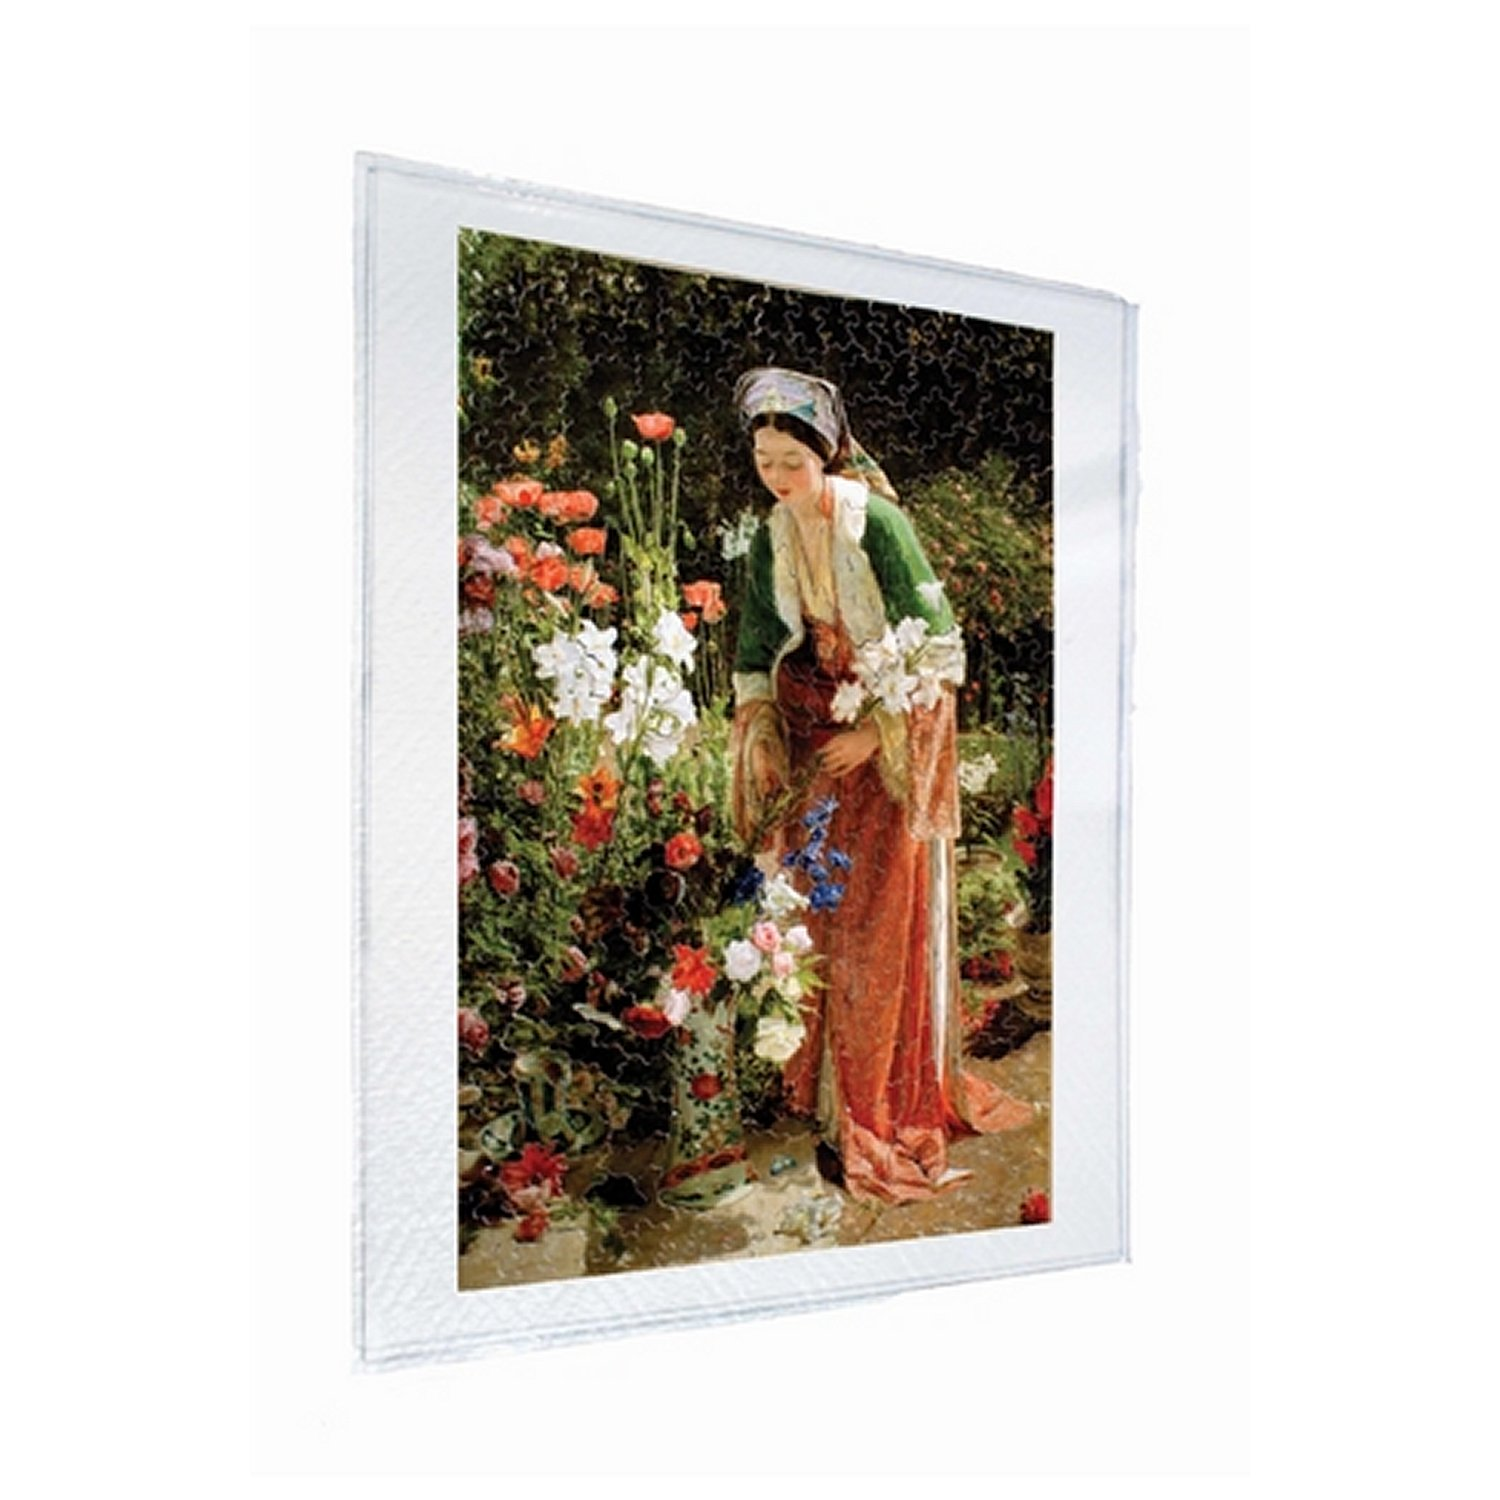 Cadre mural 20 x 20 cm puzzle michele wilson g30 for Cadre mural plantes